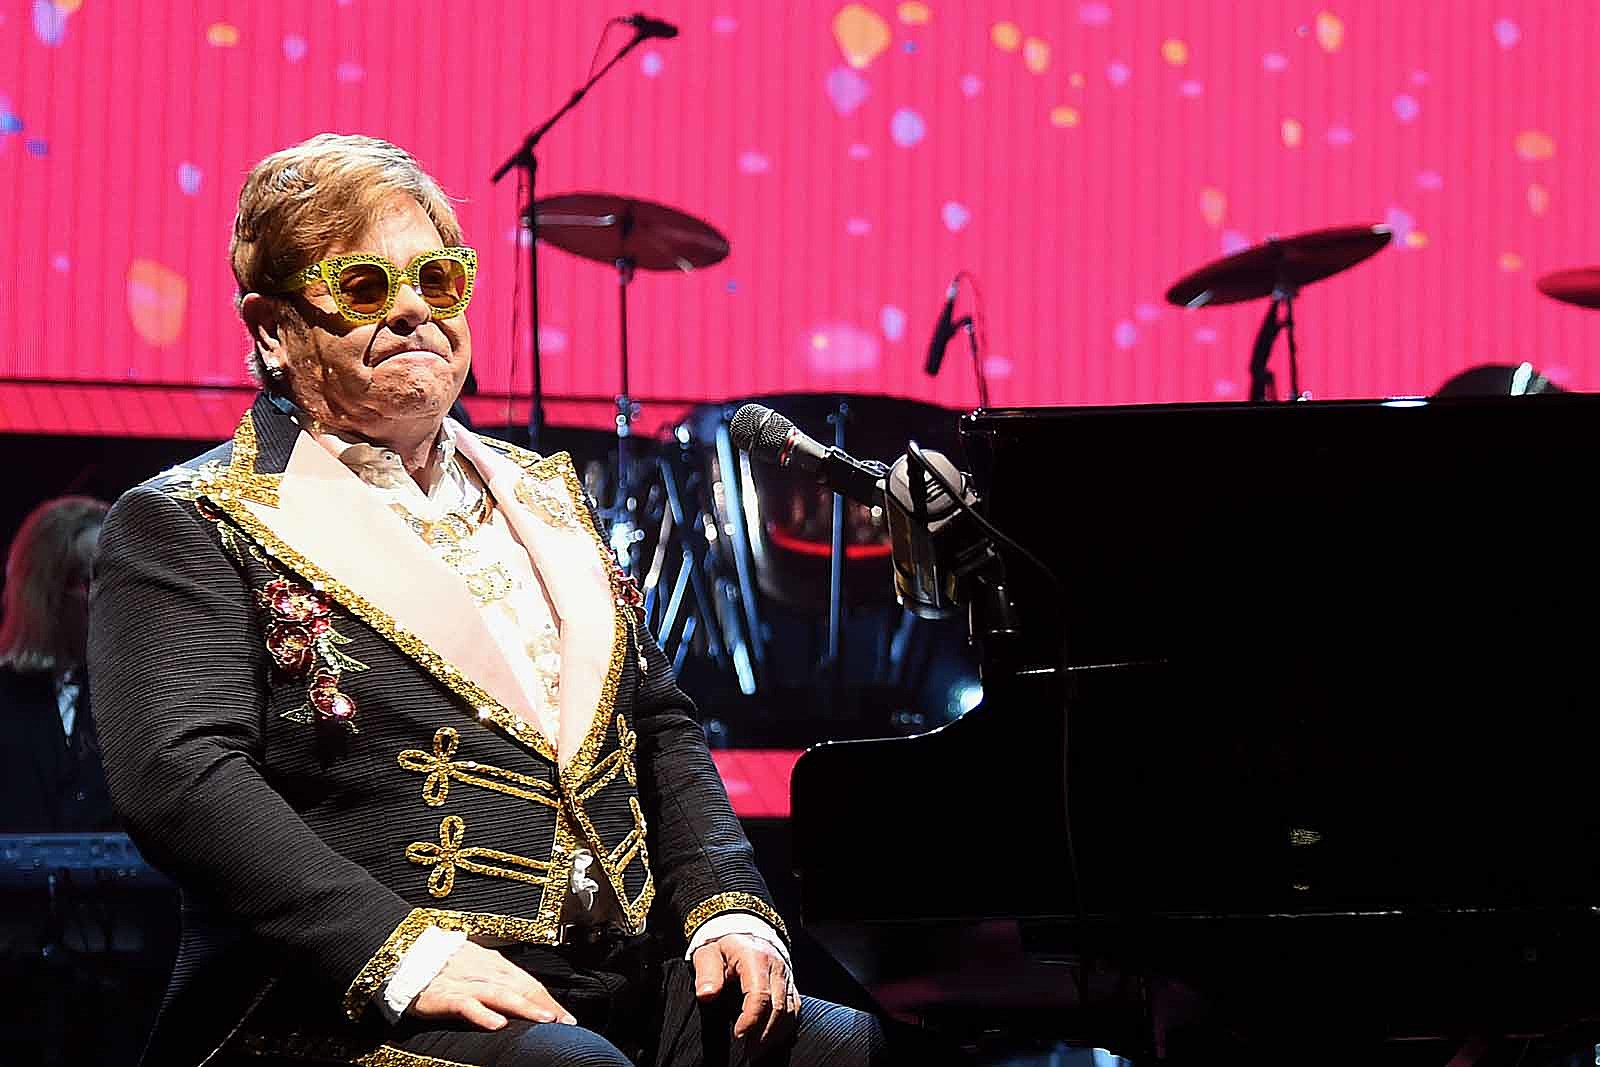 Is 'Victim of Love' Elton John's Worst Album?